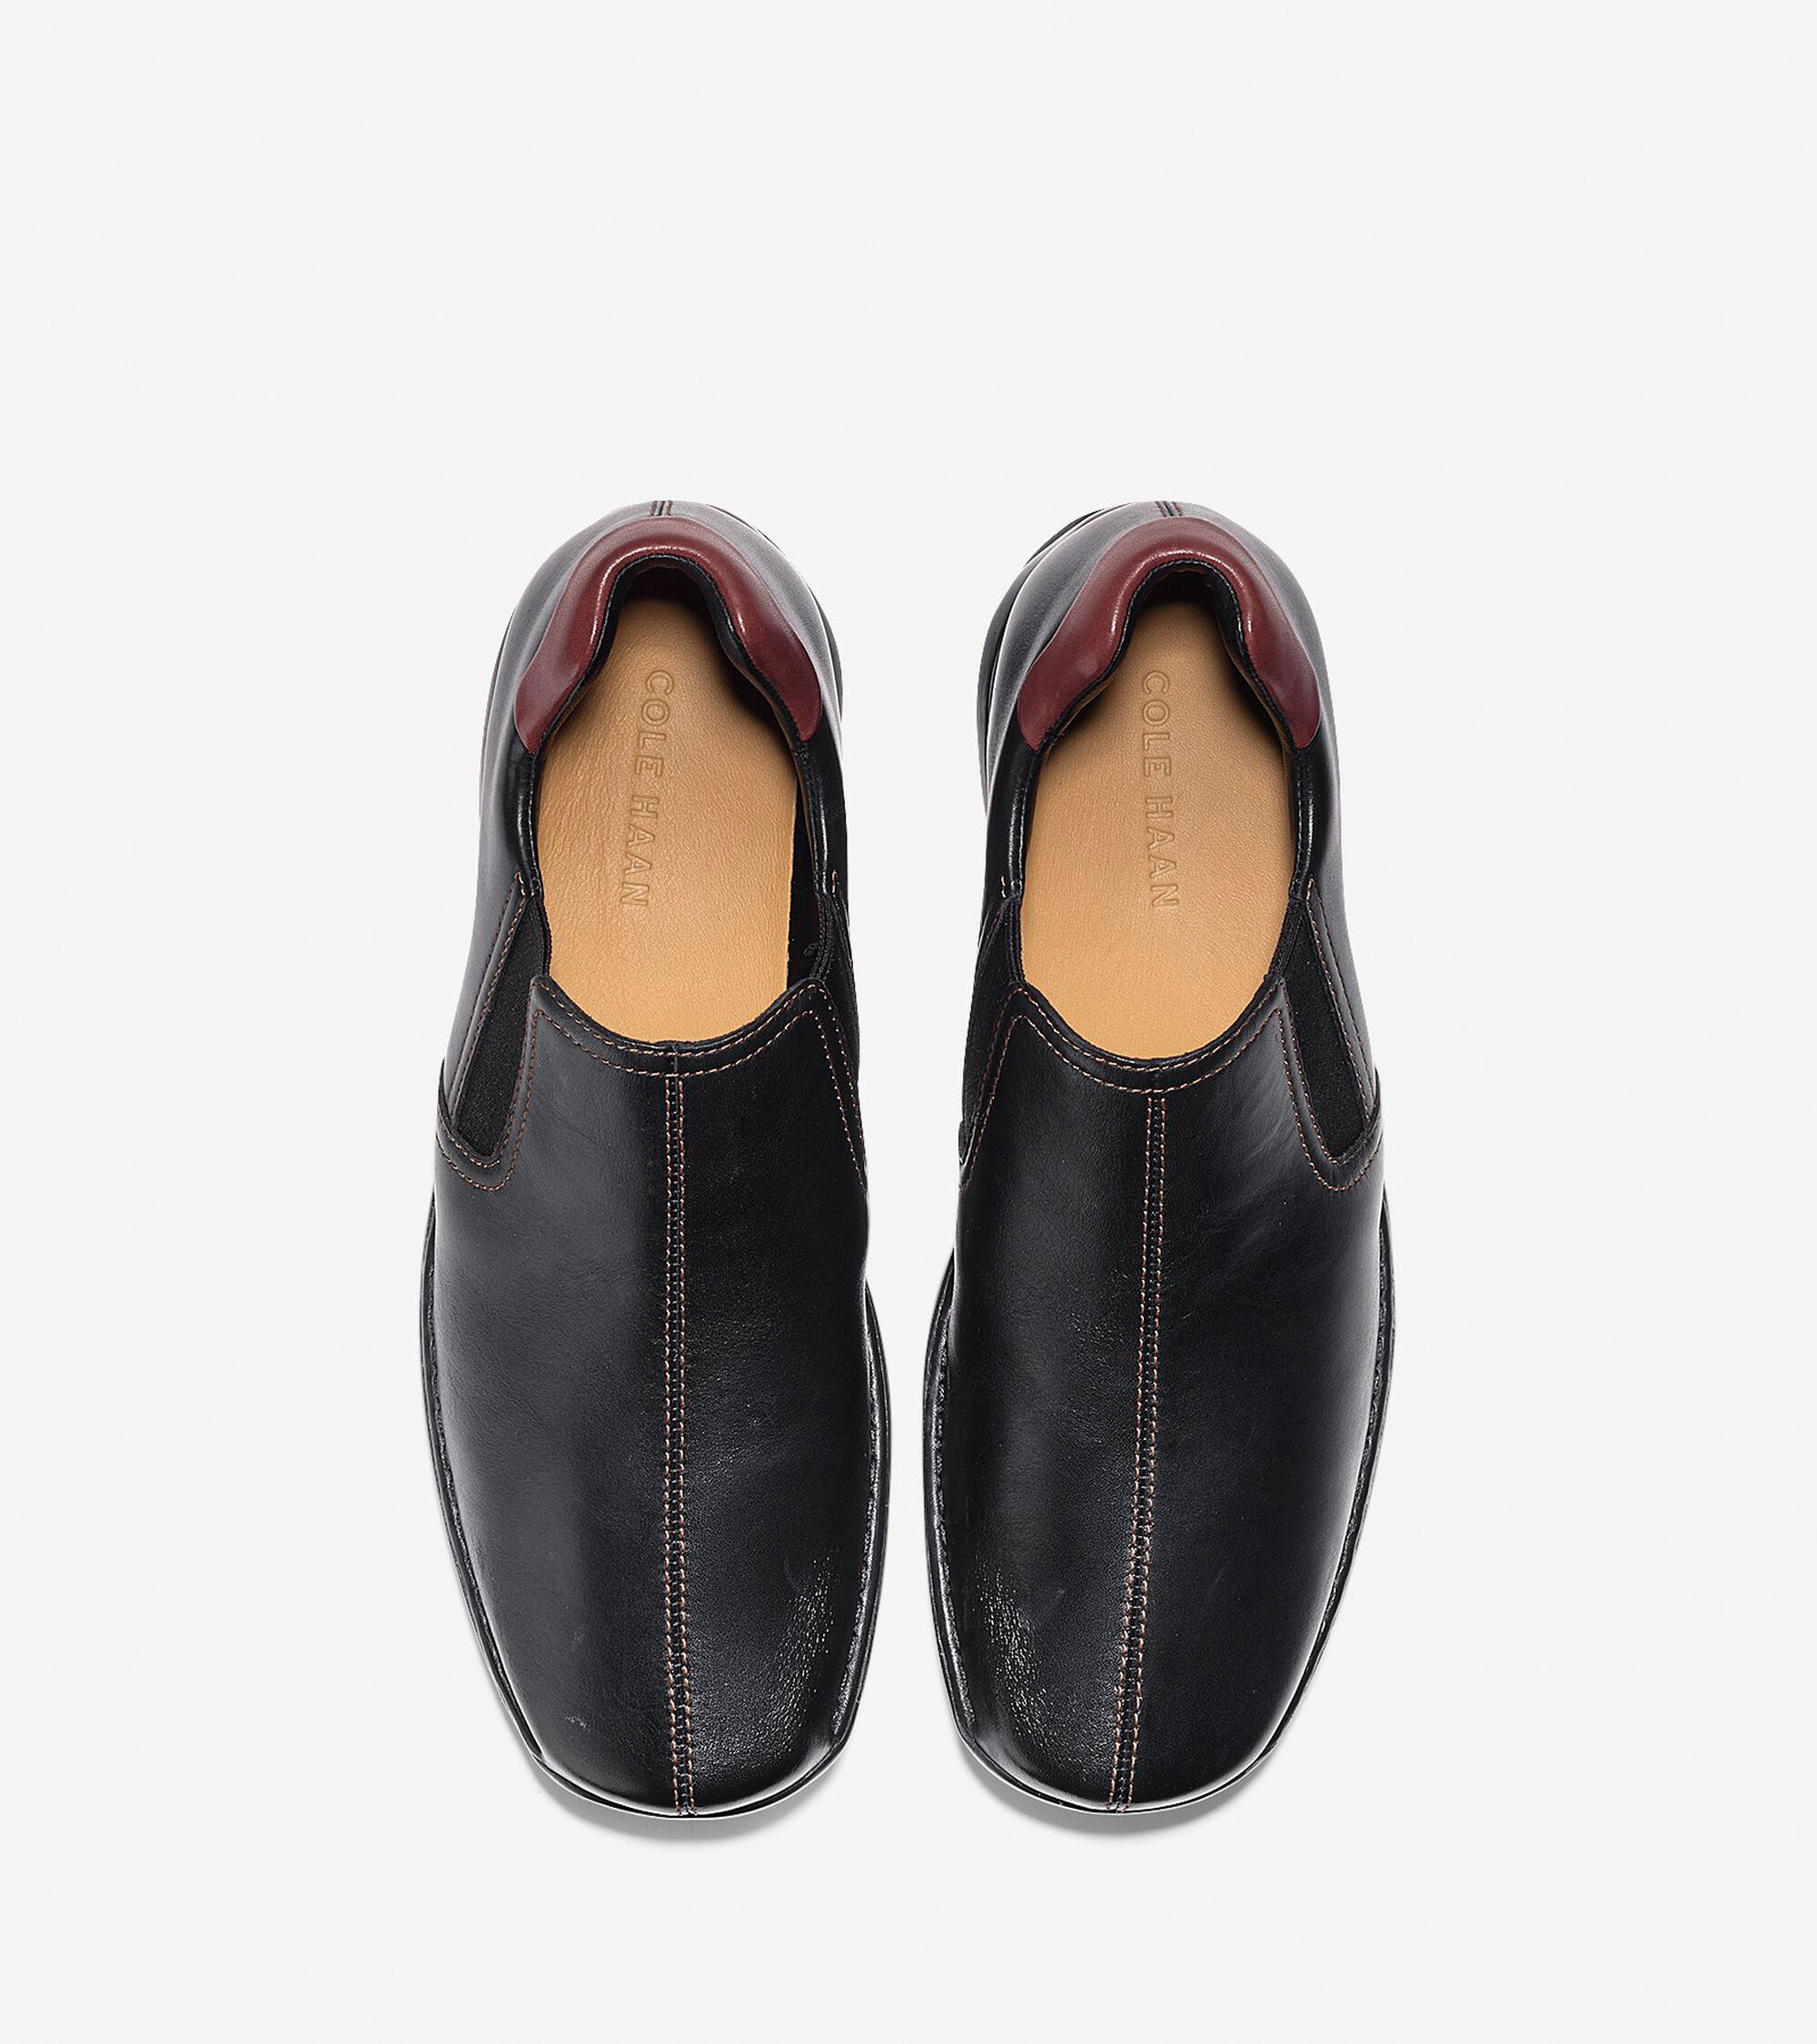 38e535d986a Cole Haan Zeno Slip-On Loafer in Black   ColeHaan.com